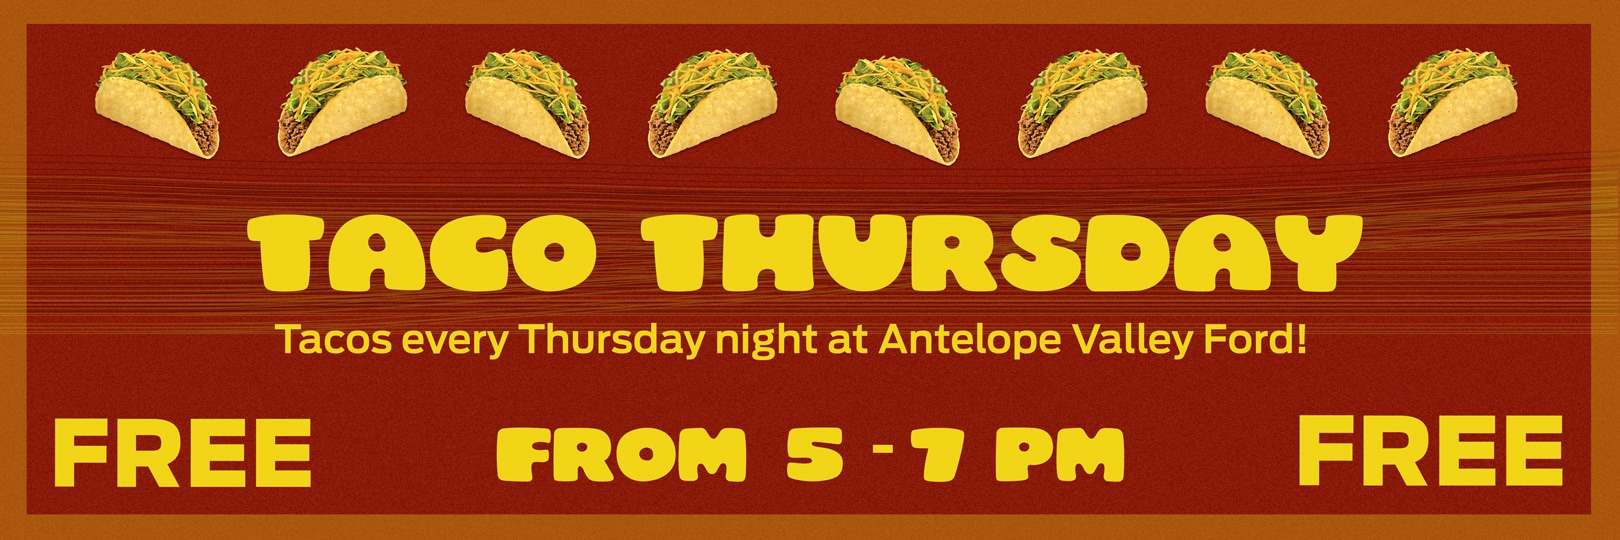 Taco Thursday at Antelope Valley Ford in Lancaster!